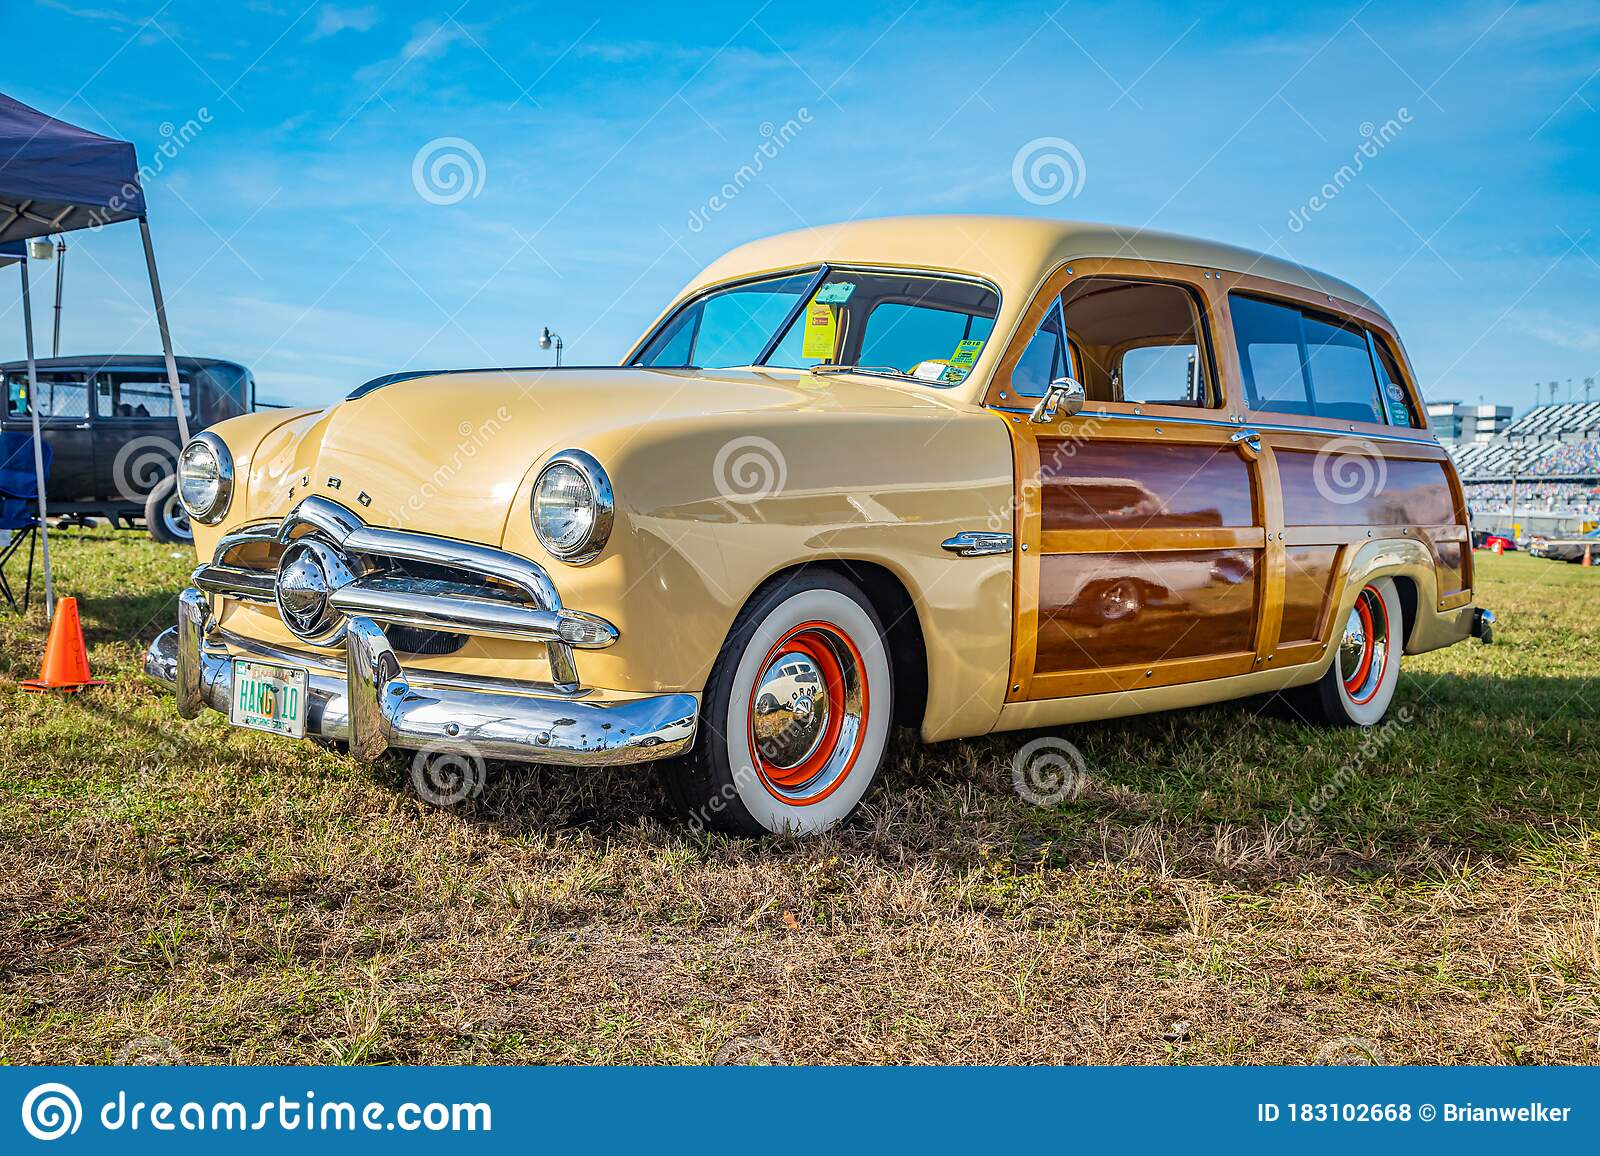 210 Woody Wagon Photos Free Royalty Free Stock Photos From Dreamstime